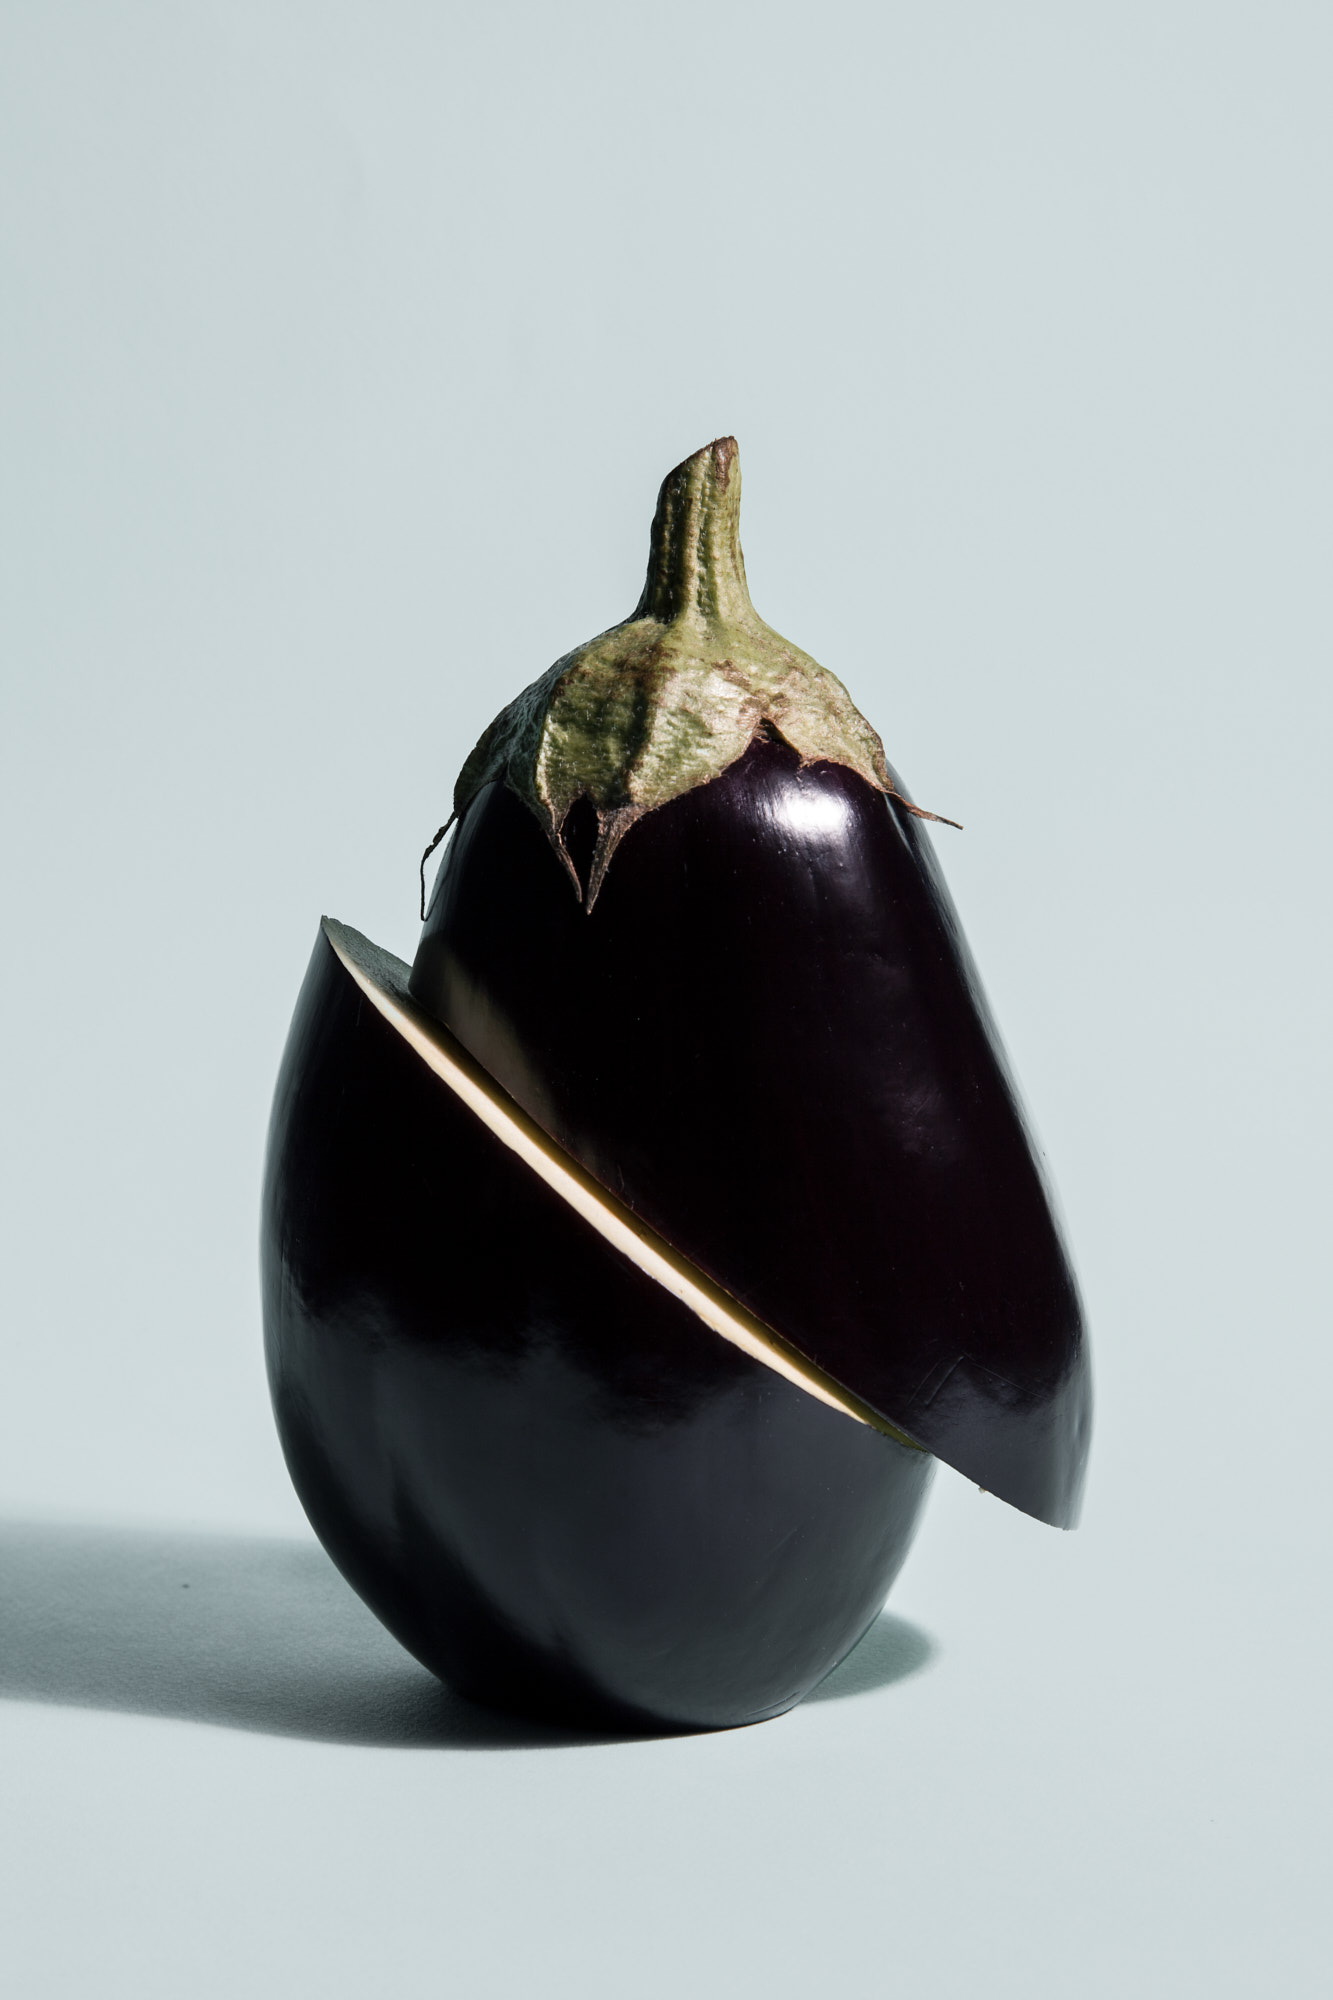 SMCLEOD_LocavoreTAS (3 of 28)_Eggplant